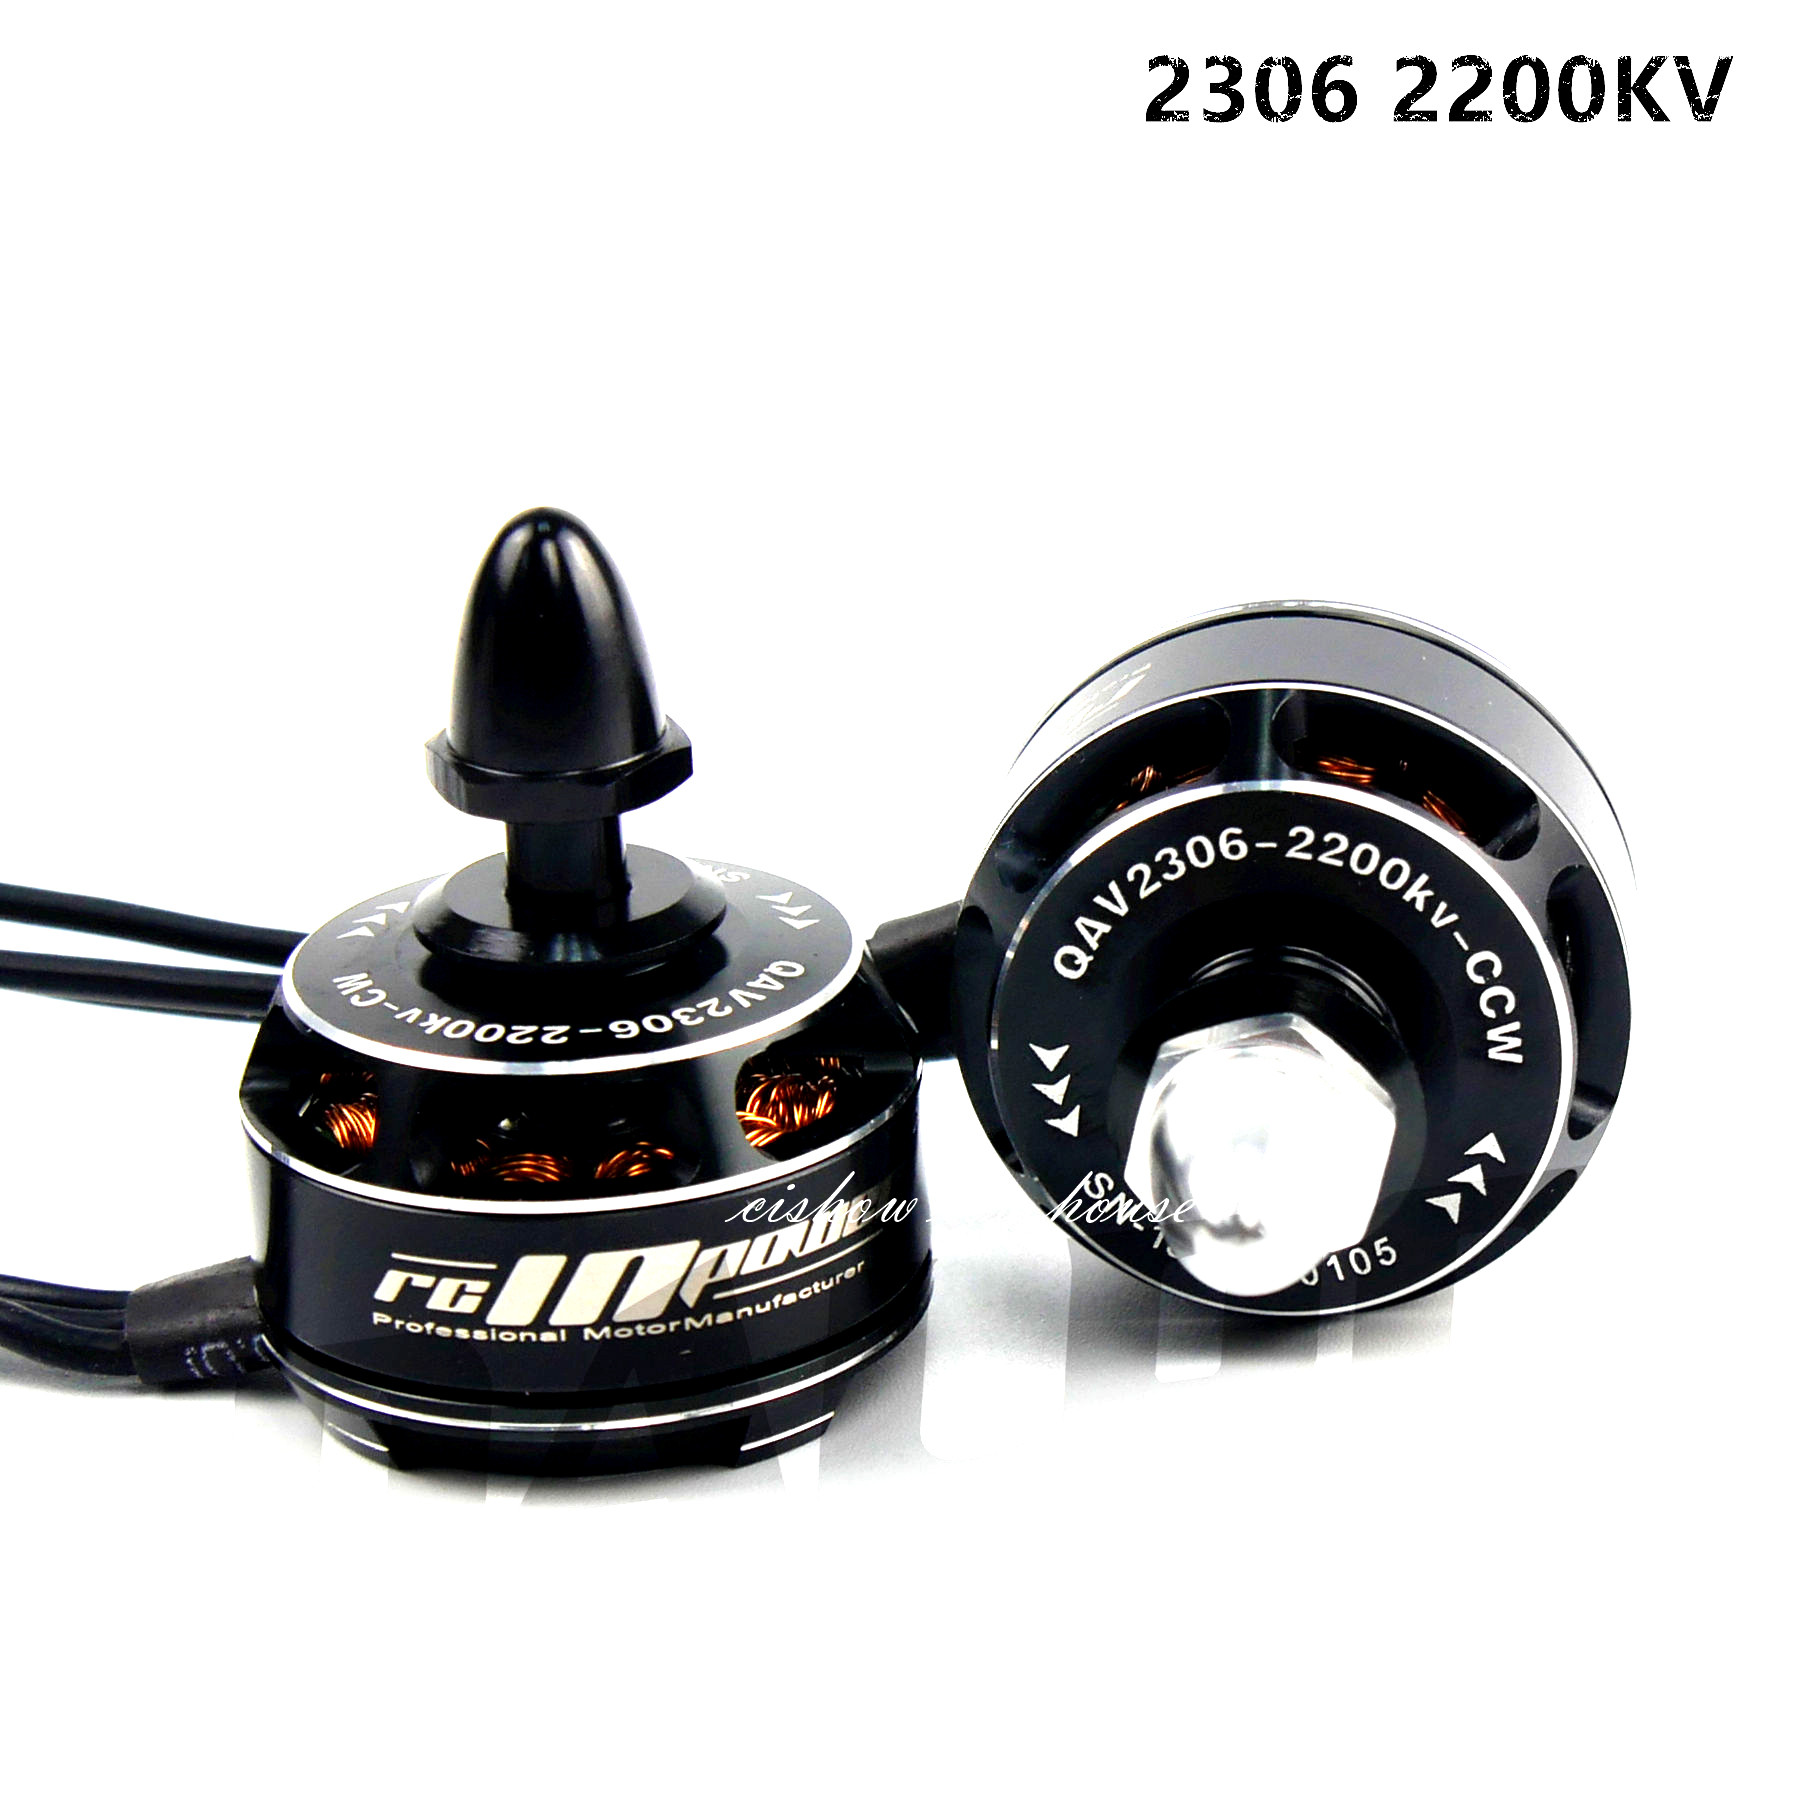 RCINPOWER 2306 2200KV Mini Brushless Motor CW CCW for RC Racing Multicopter FPV high quality kingkong 1306 3100kv 2 4s burshless motor cw ccw for fpv racer drones rc multicopter